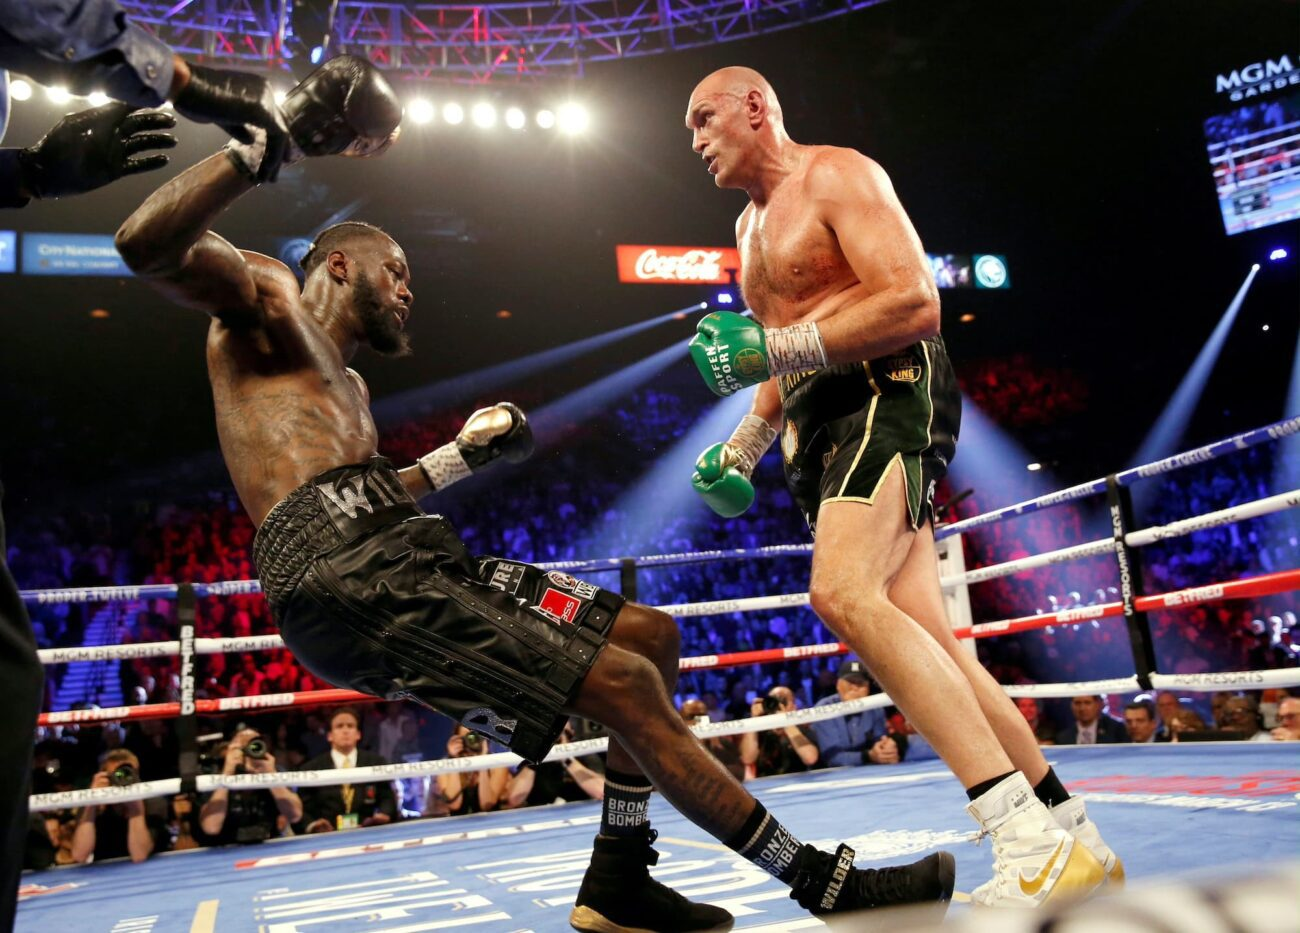 Boxing fans are psyched to see Wilder vs Fury, and no one knows who will come out on top this time. Watch all the action by streaming the fight online.